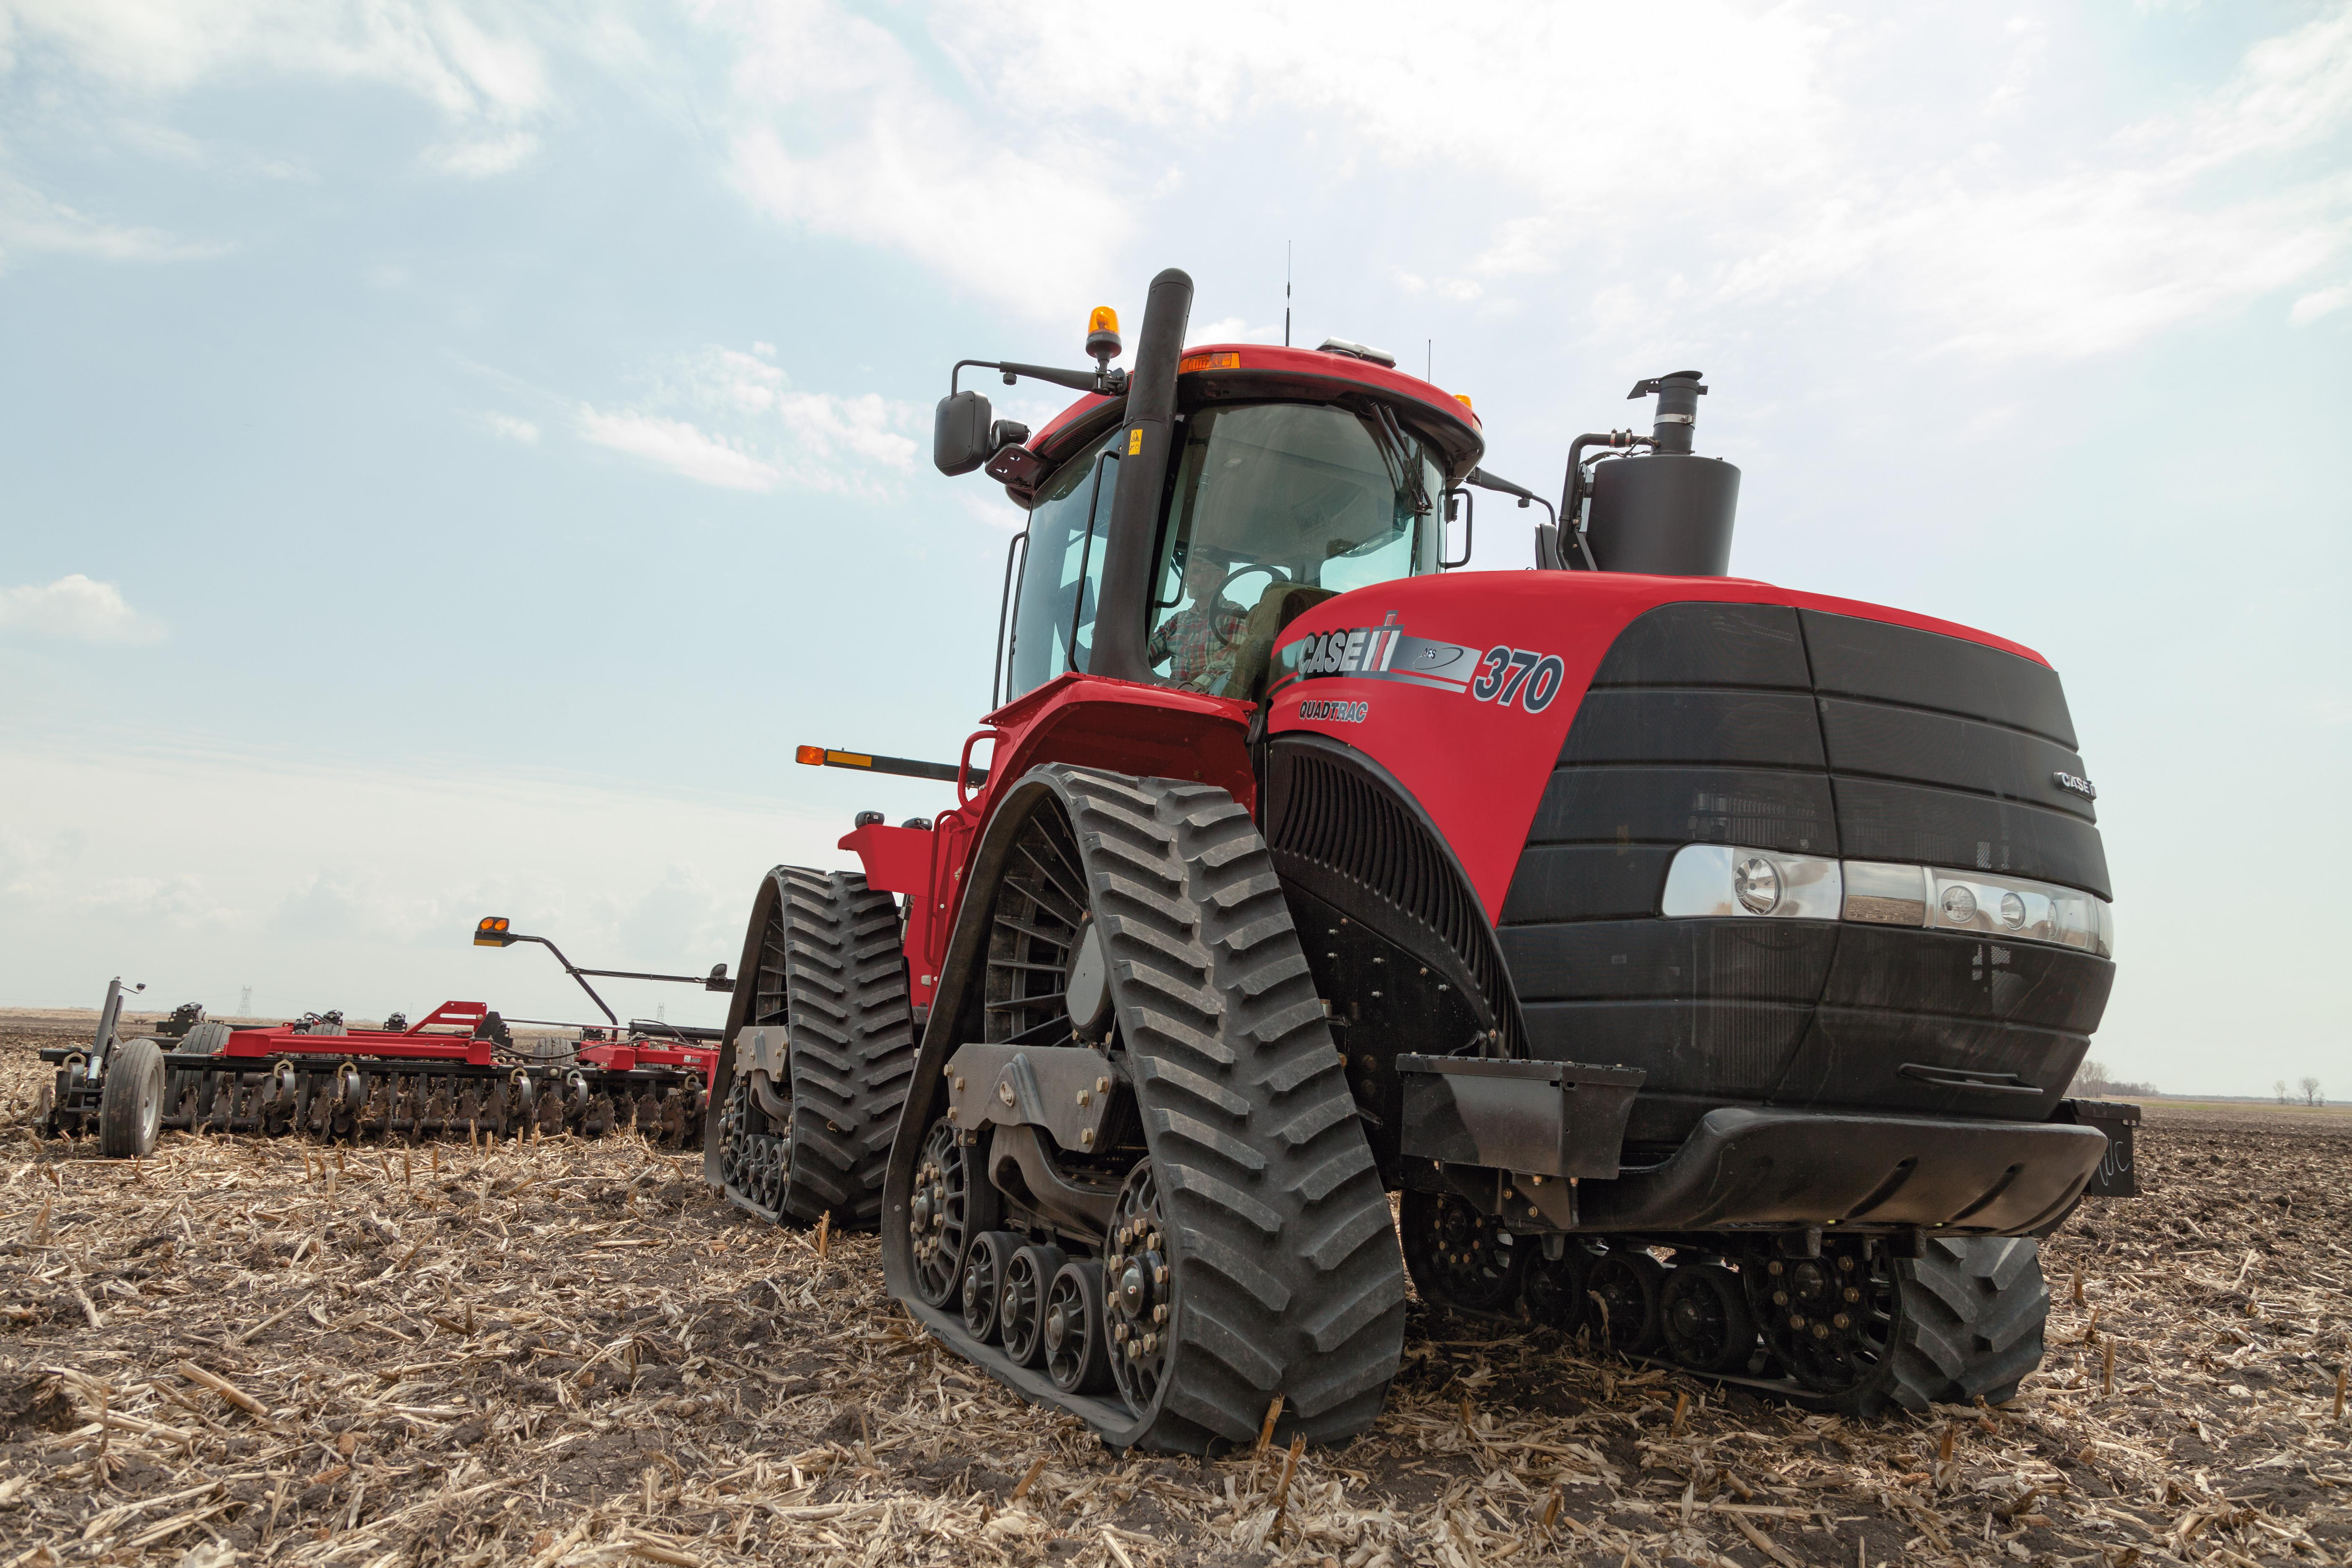 Steiger_370_Rowtrac_B 2338_05 03 13_mr?width=300&height=250 steiger series 4wd row crop farming tractors case ih  at gsmx.co